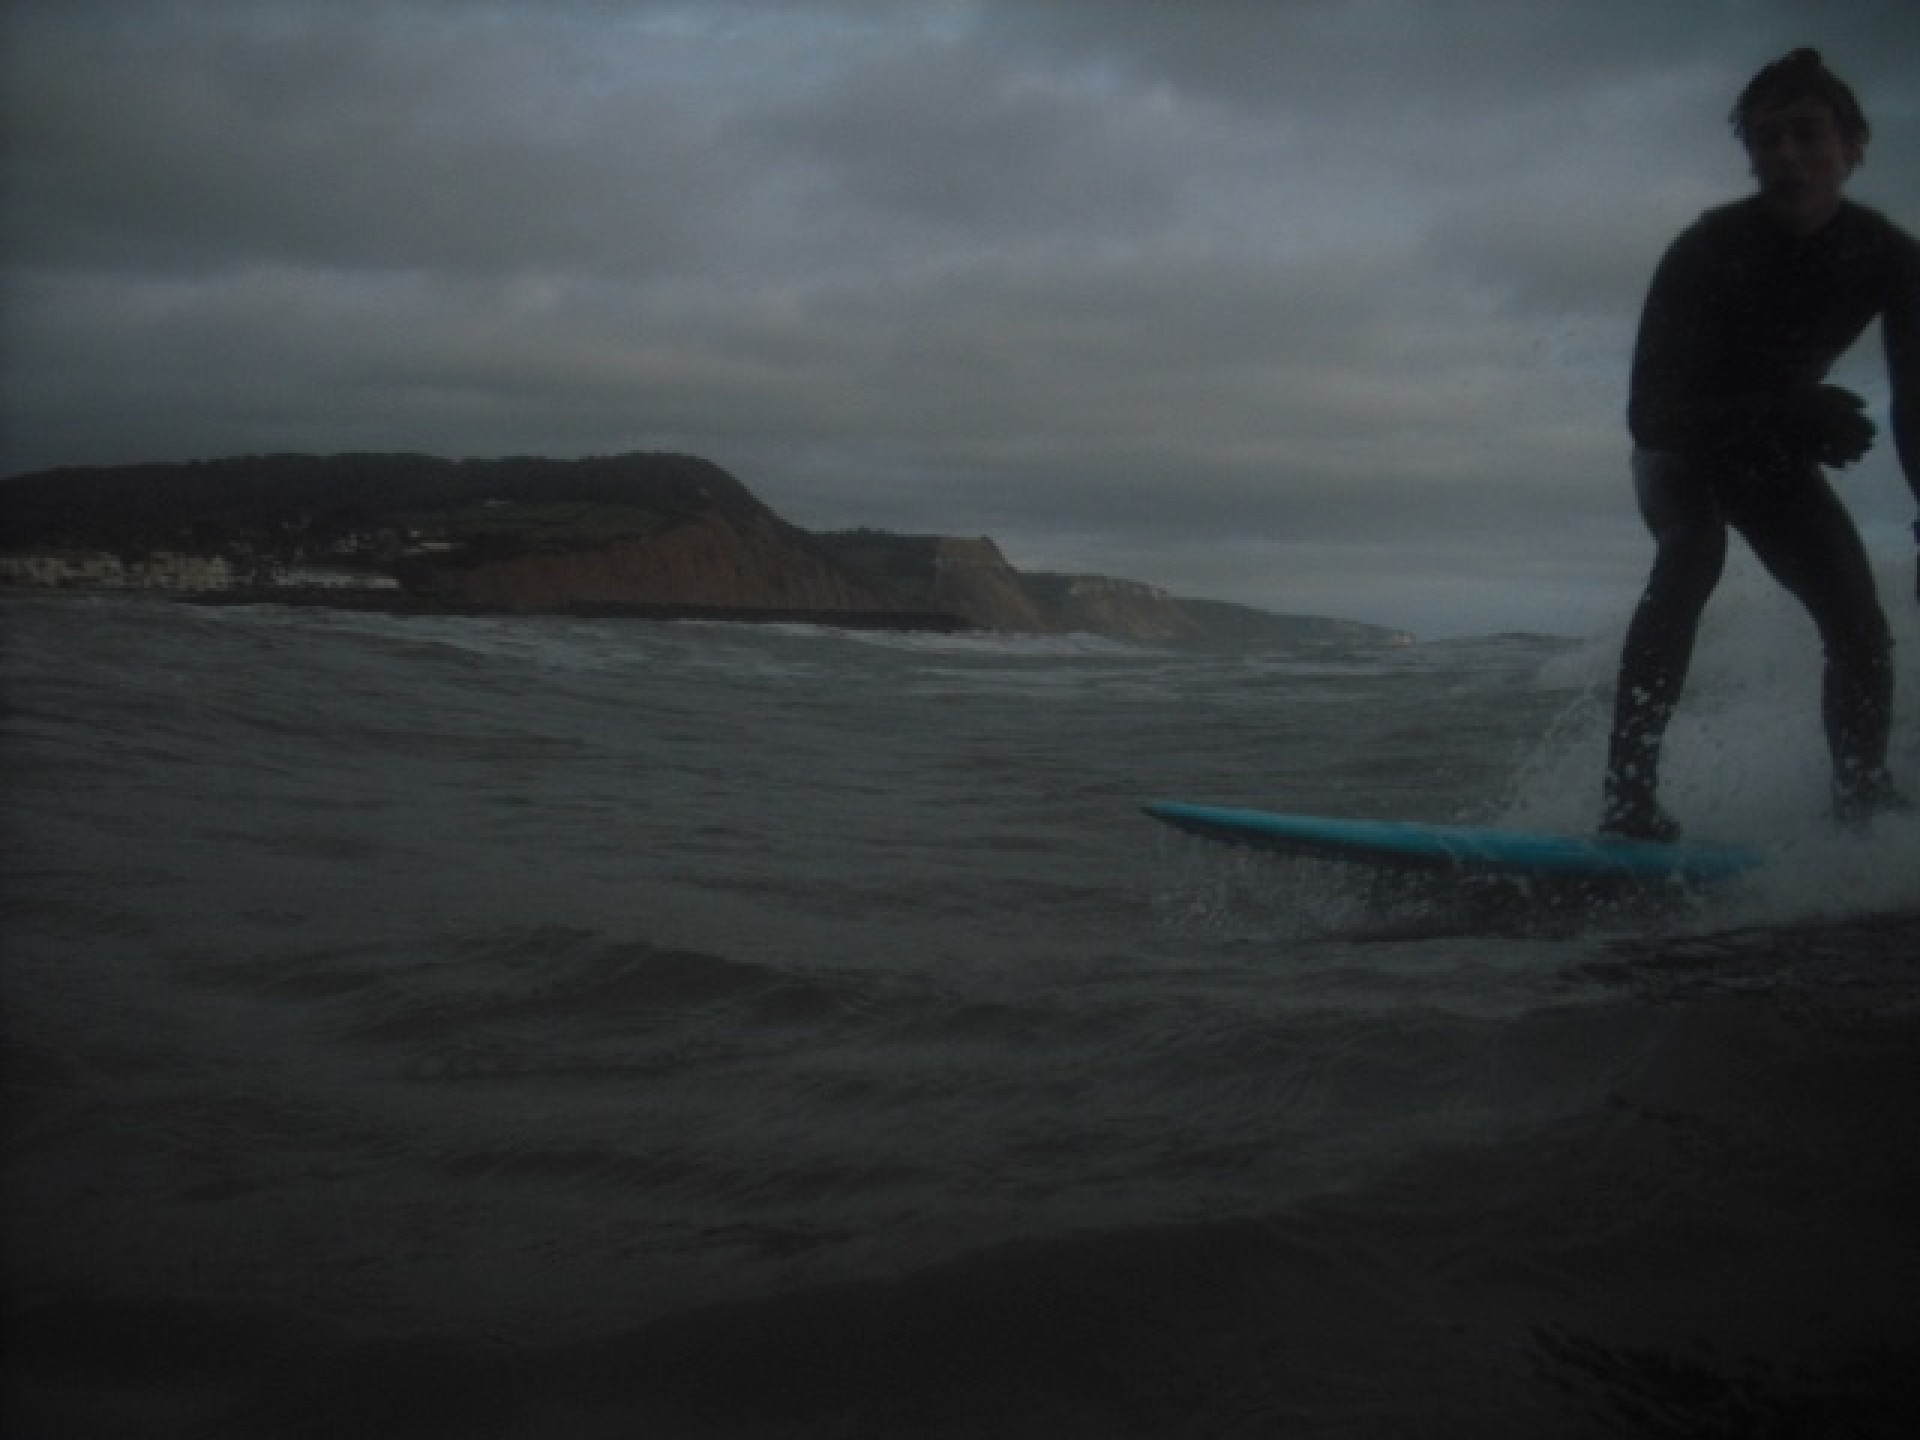 grey1's photo of Sidmouth (Lyme Bay)